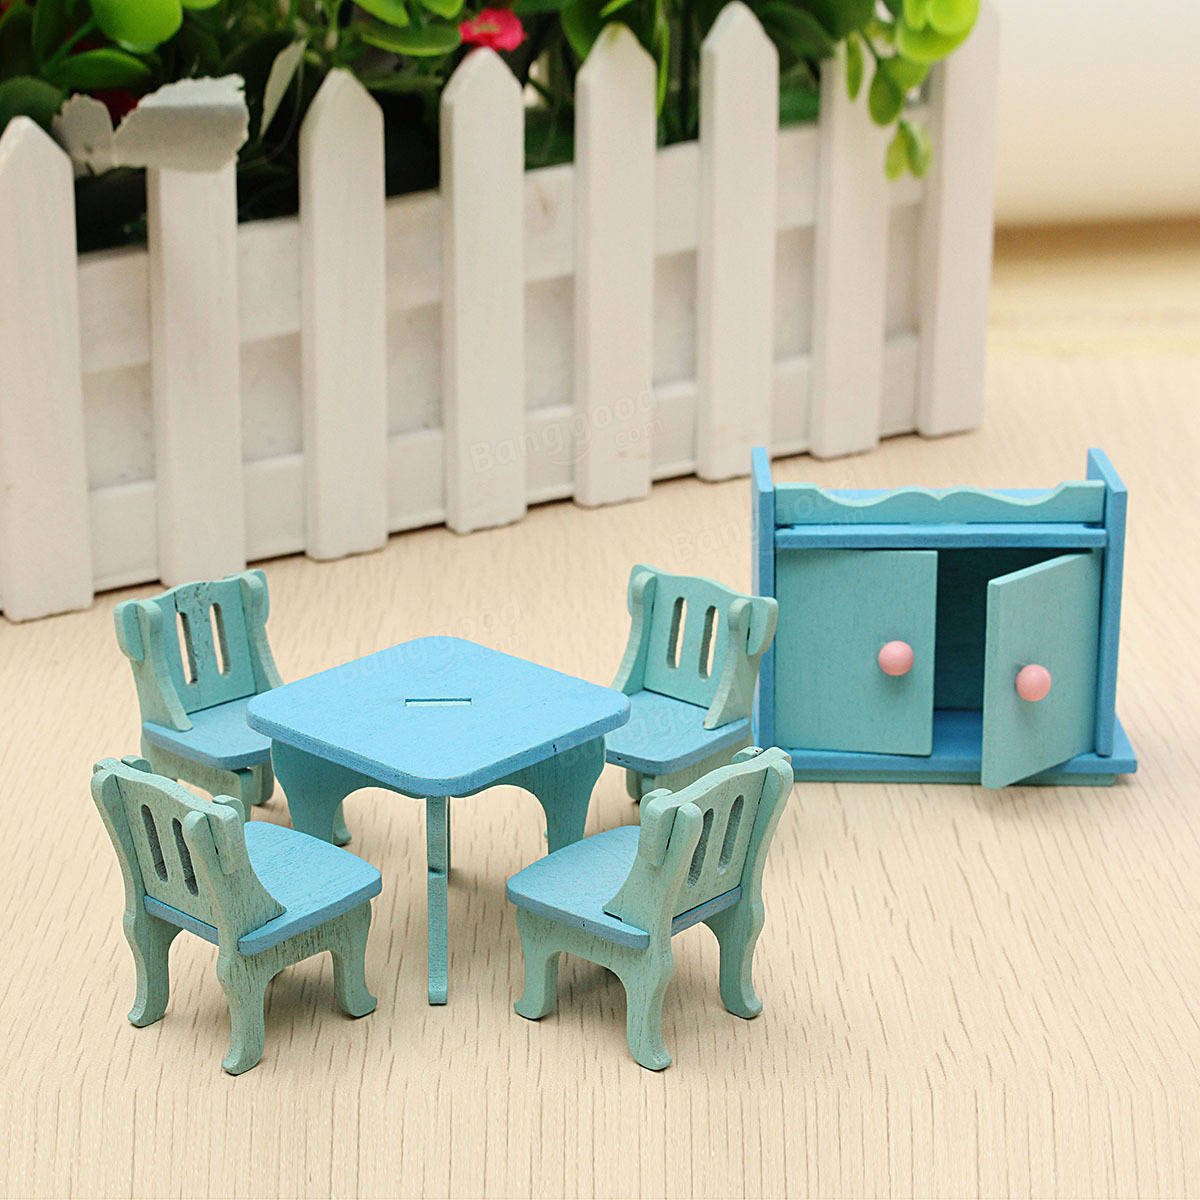 Wooden Dollhouse Furniture Doll House Miniature Dinning Room Set Kids Role Play Toy Kit Sale